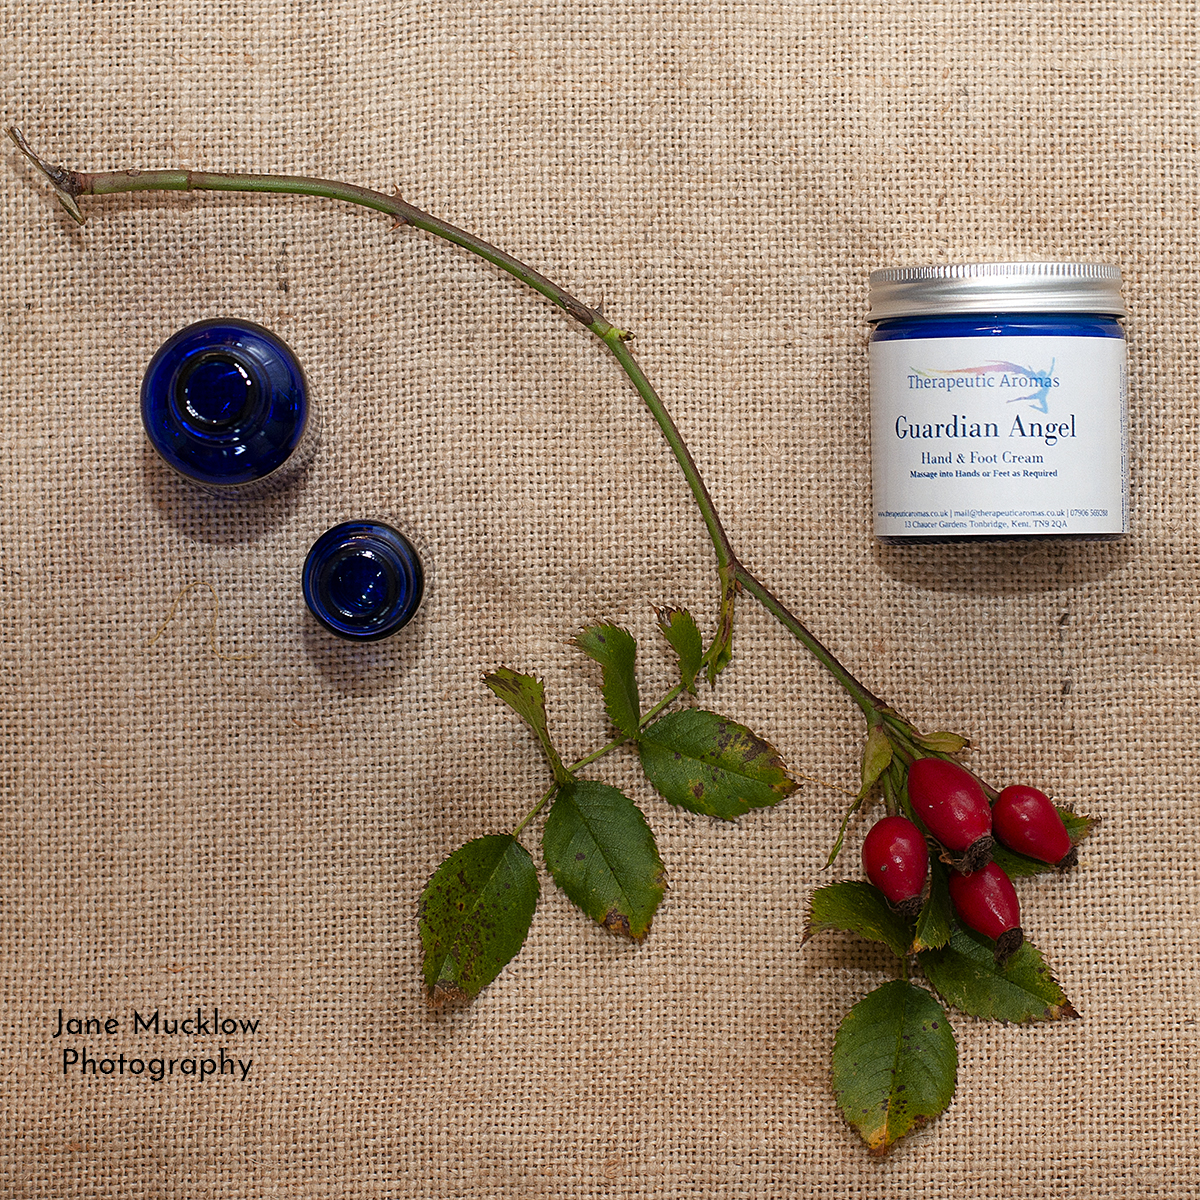 Photograph by Jane Mucklow of a cream product by Therapeutic Aromas